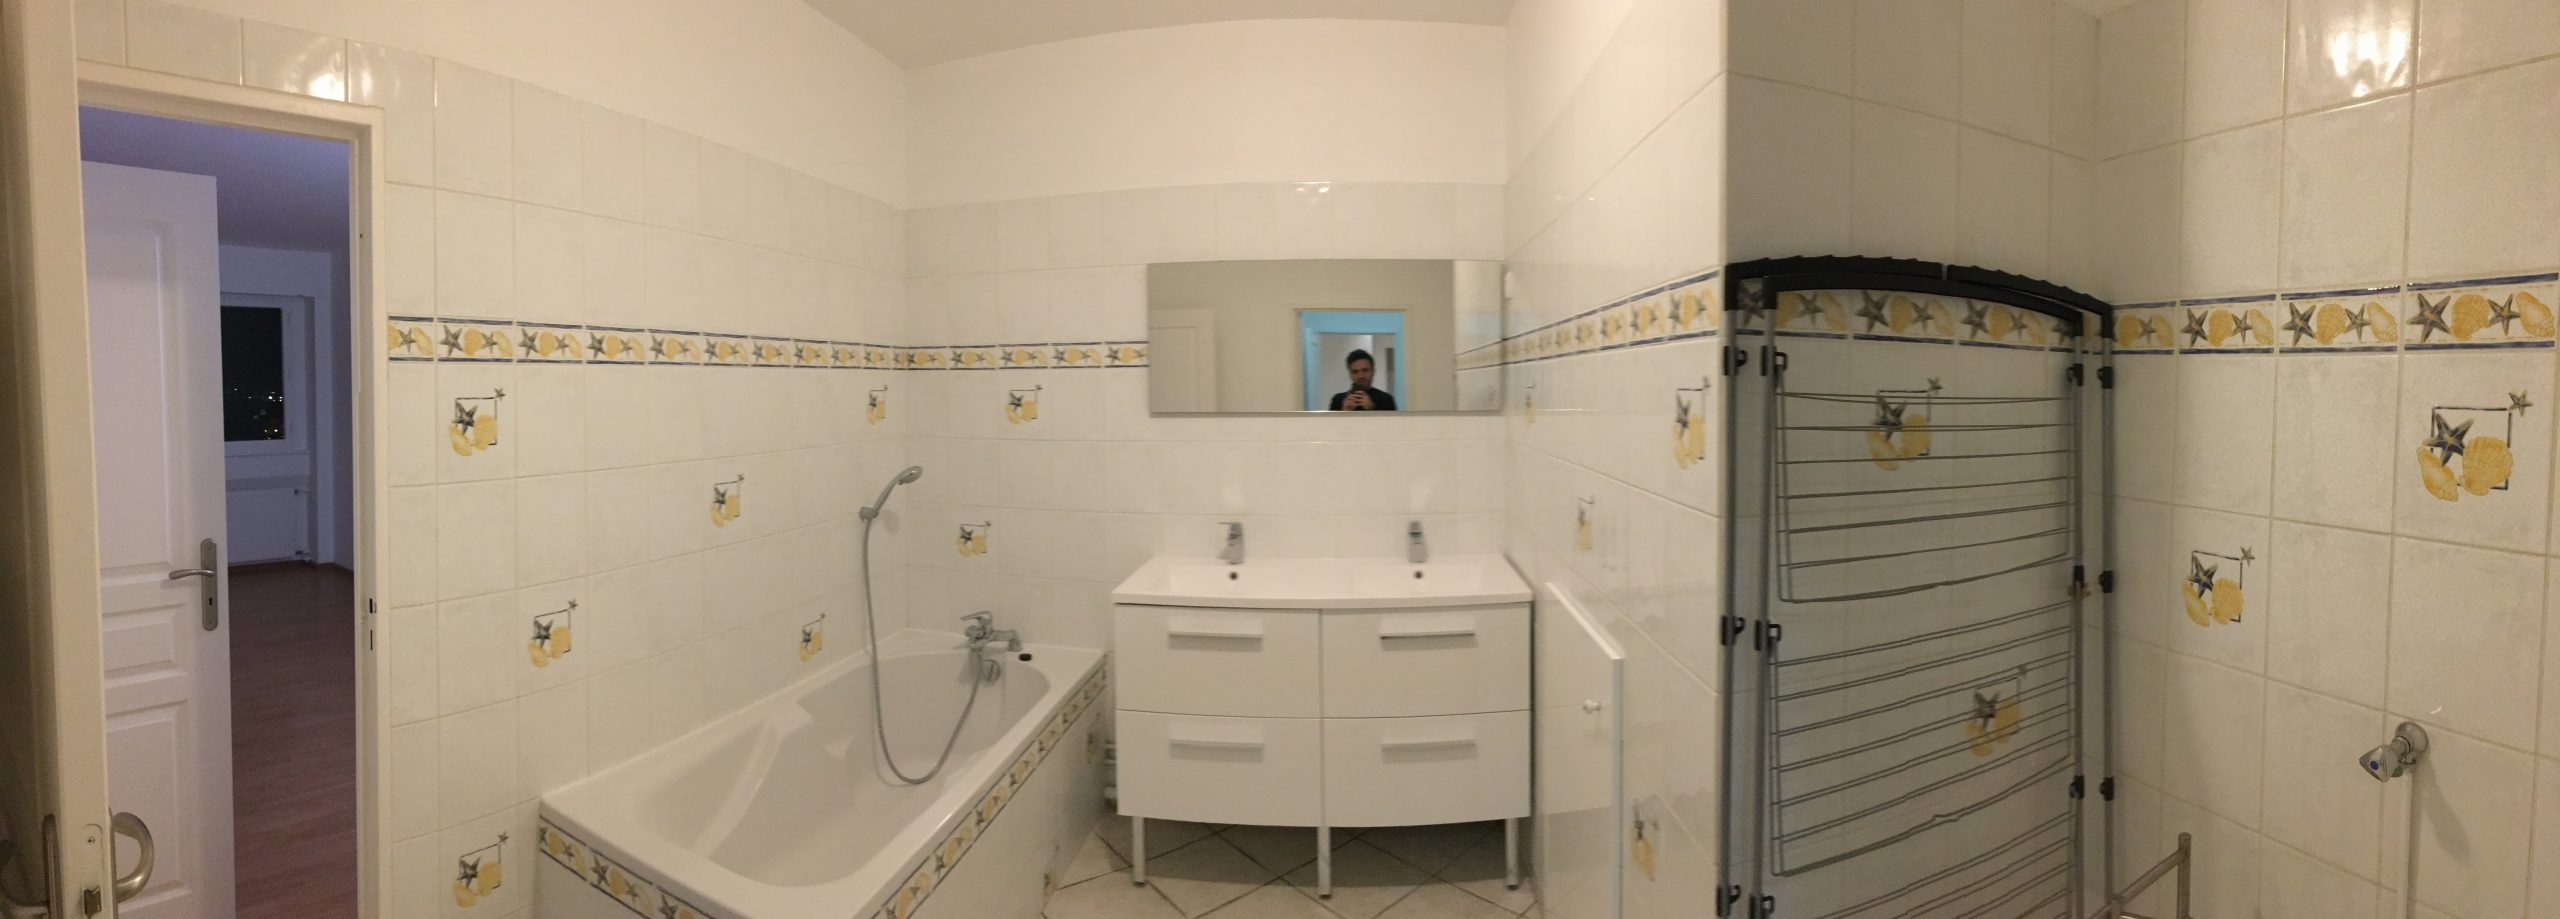 Photo avant travaux salle de bain de l'appartement - Archibien